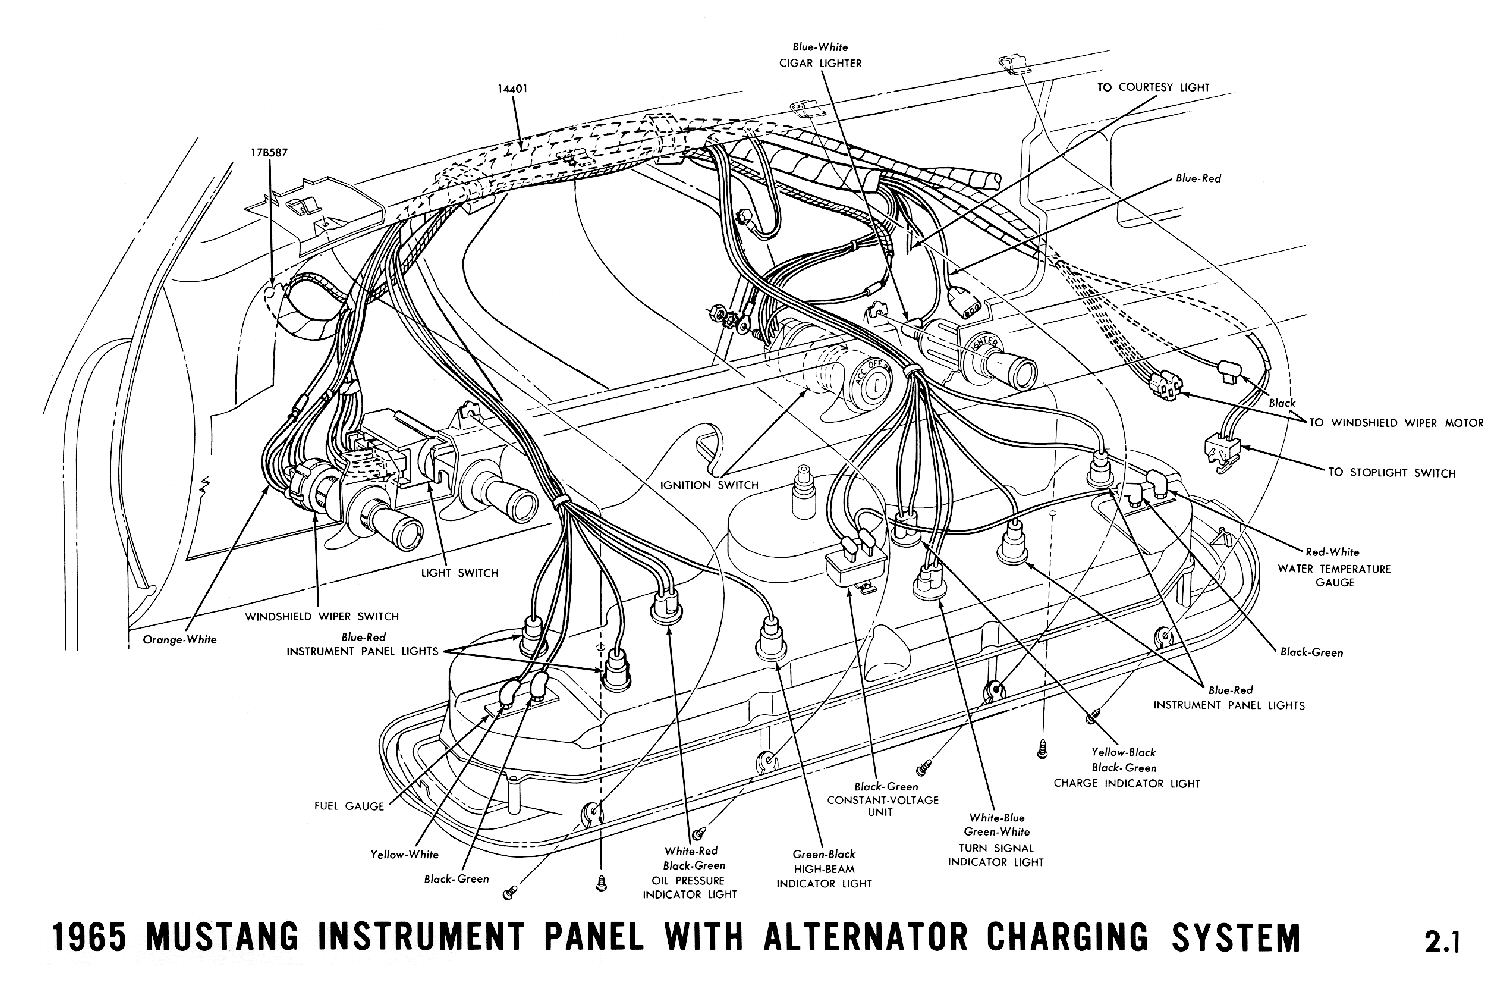 1965a 1965 mustang wiring diagrams average joe restoration 1967 Mustang Wiring Schematic at alyssarenee.co